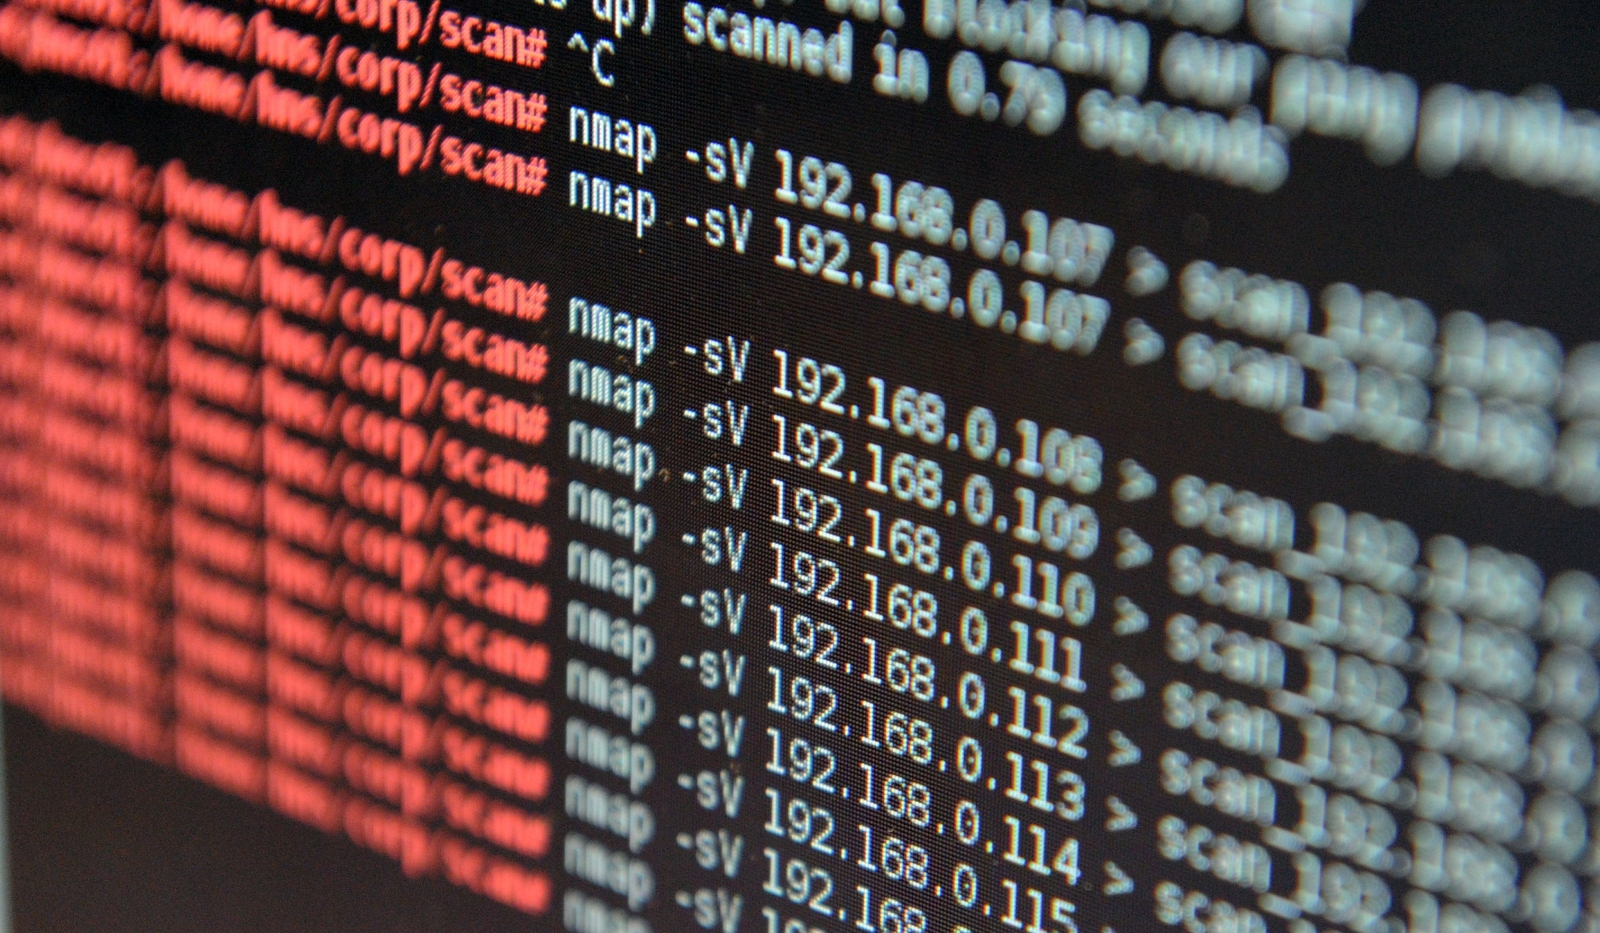 Russia, China and Europe targeted by active cyberespionage group Strider with stealth malware